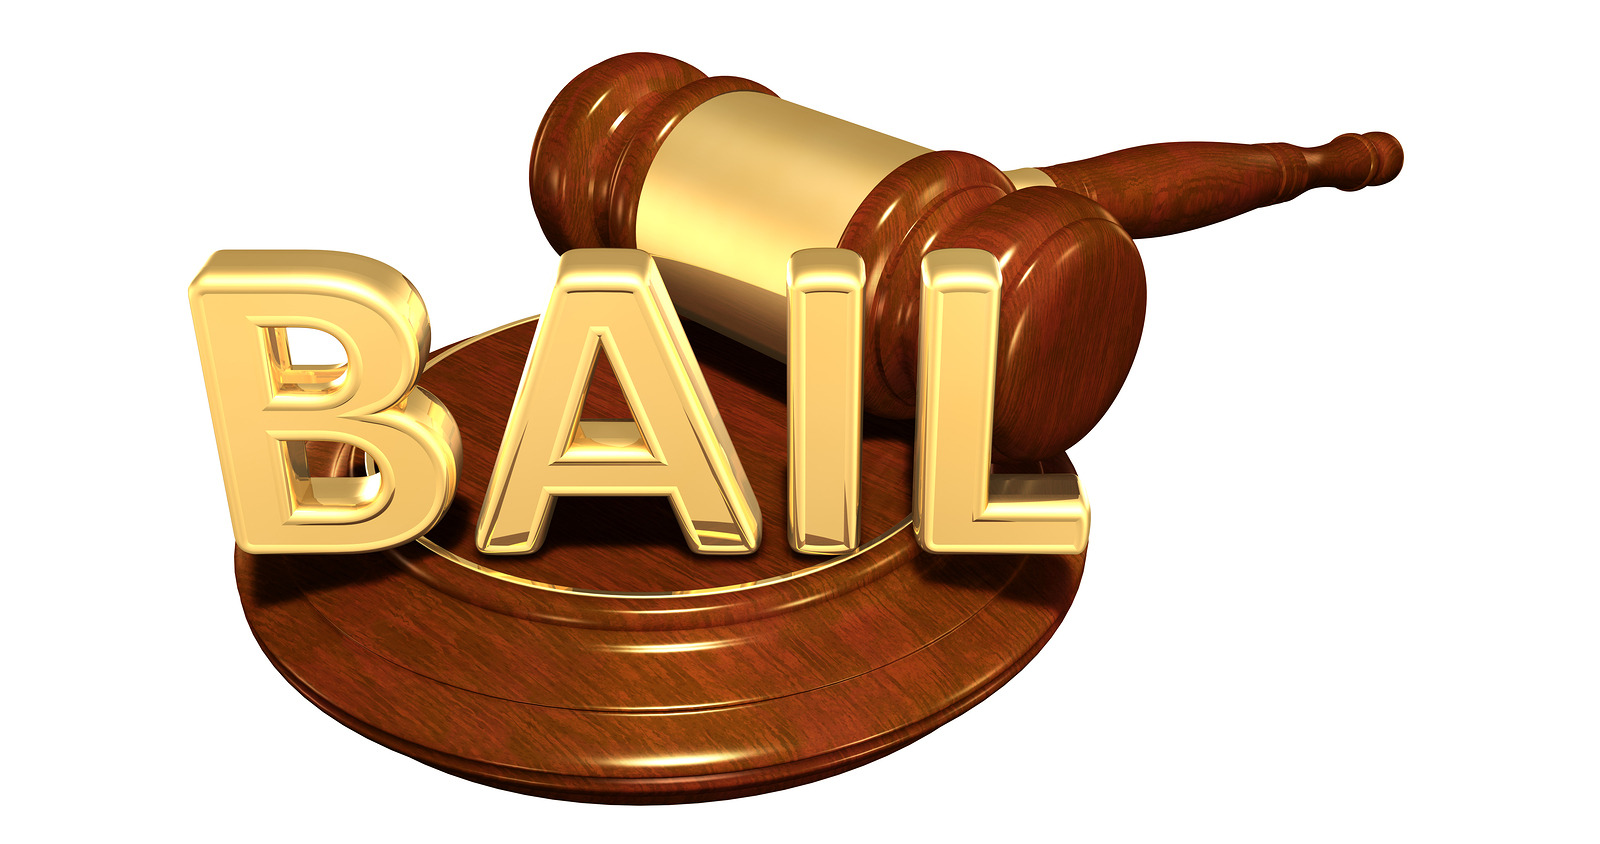 Find 24-Hour Bail Bond Service in Missoula & Billings, MT